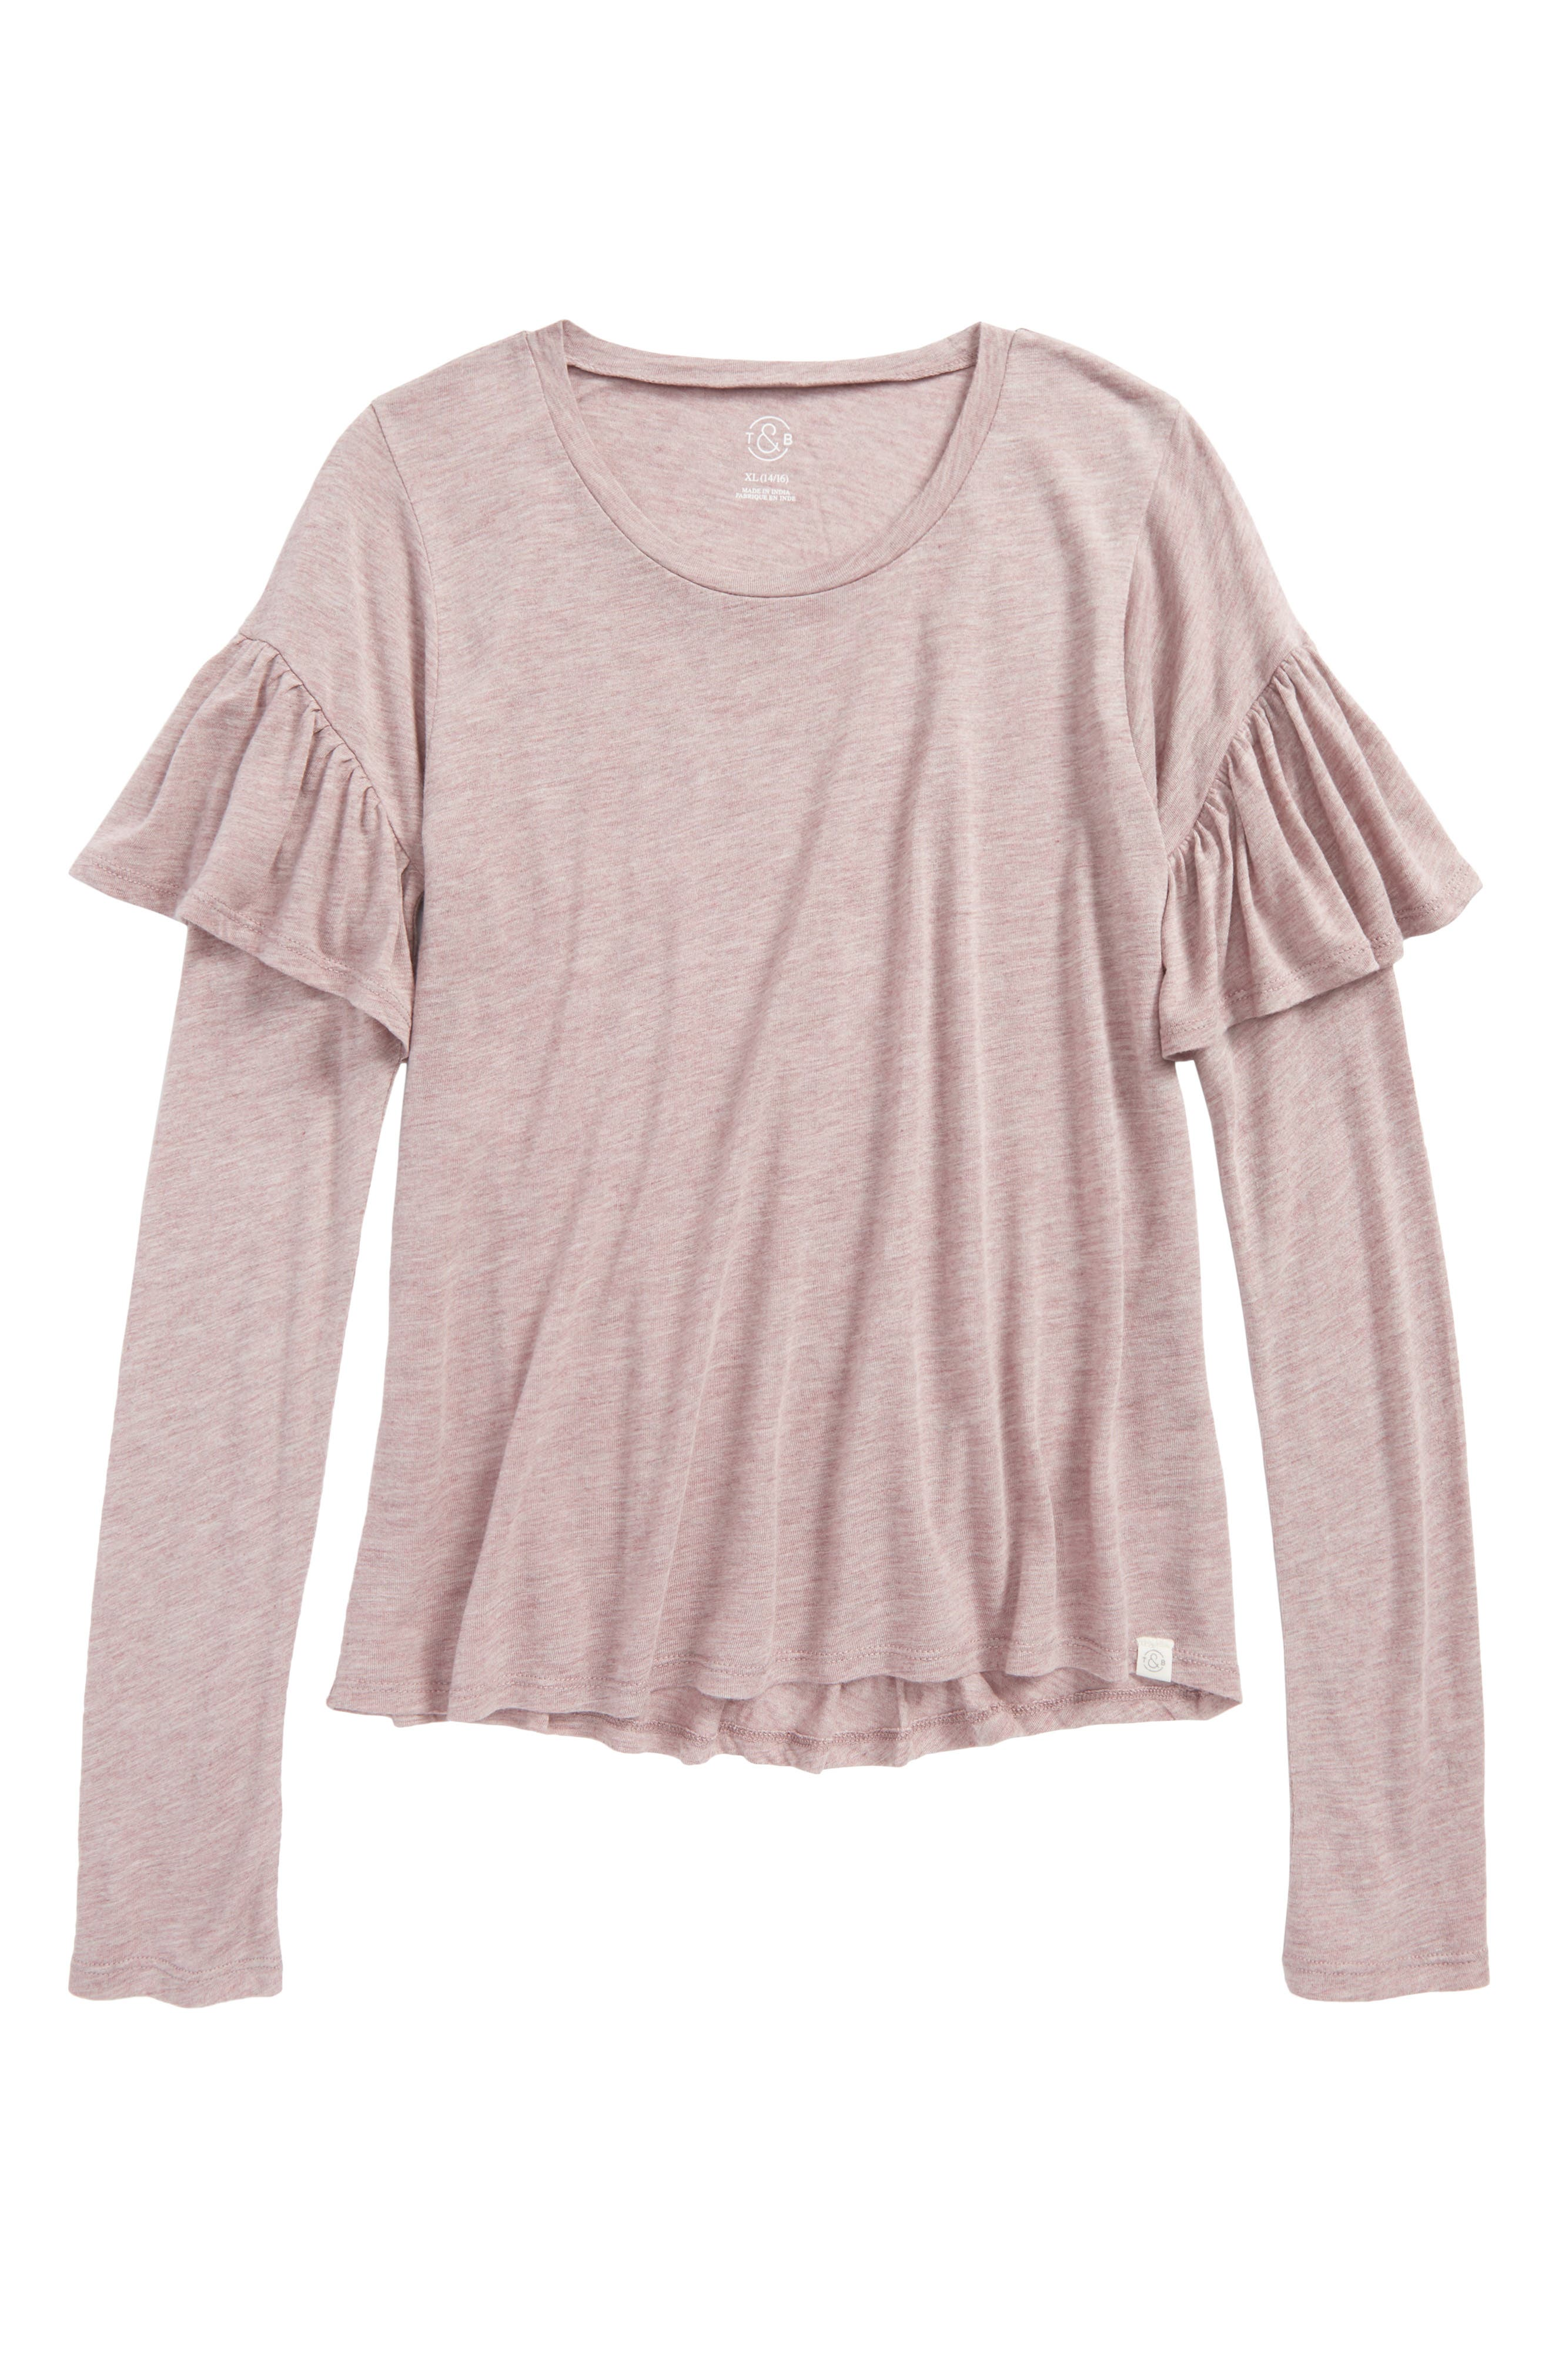 Treasure & Bond Ruffle Sleeve Tee (Big Girls)